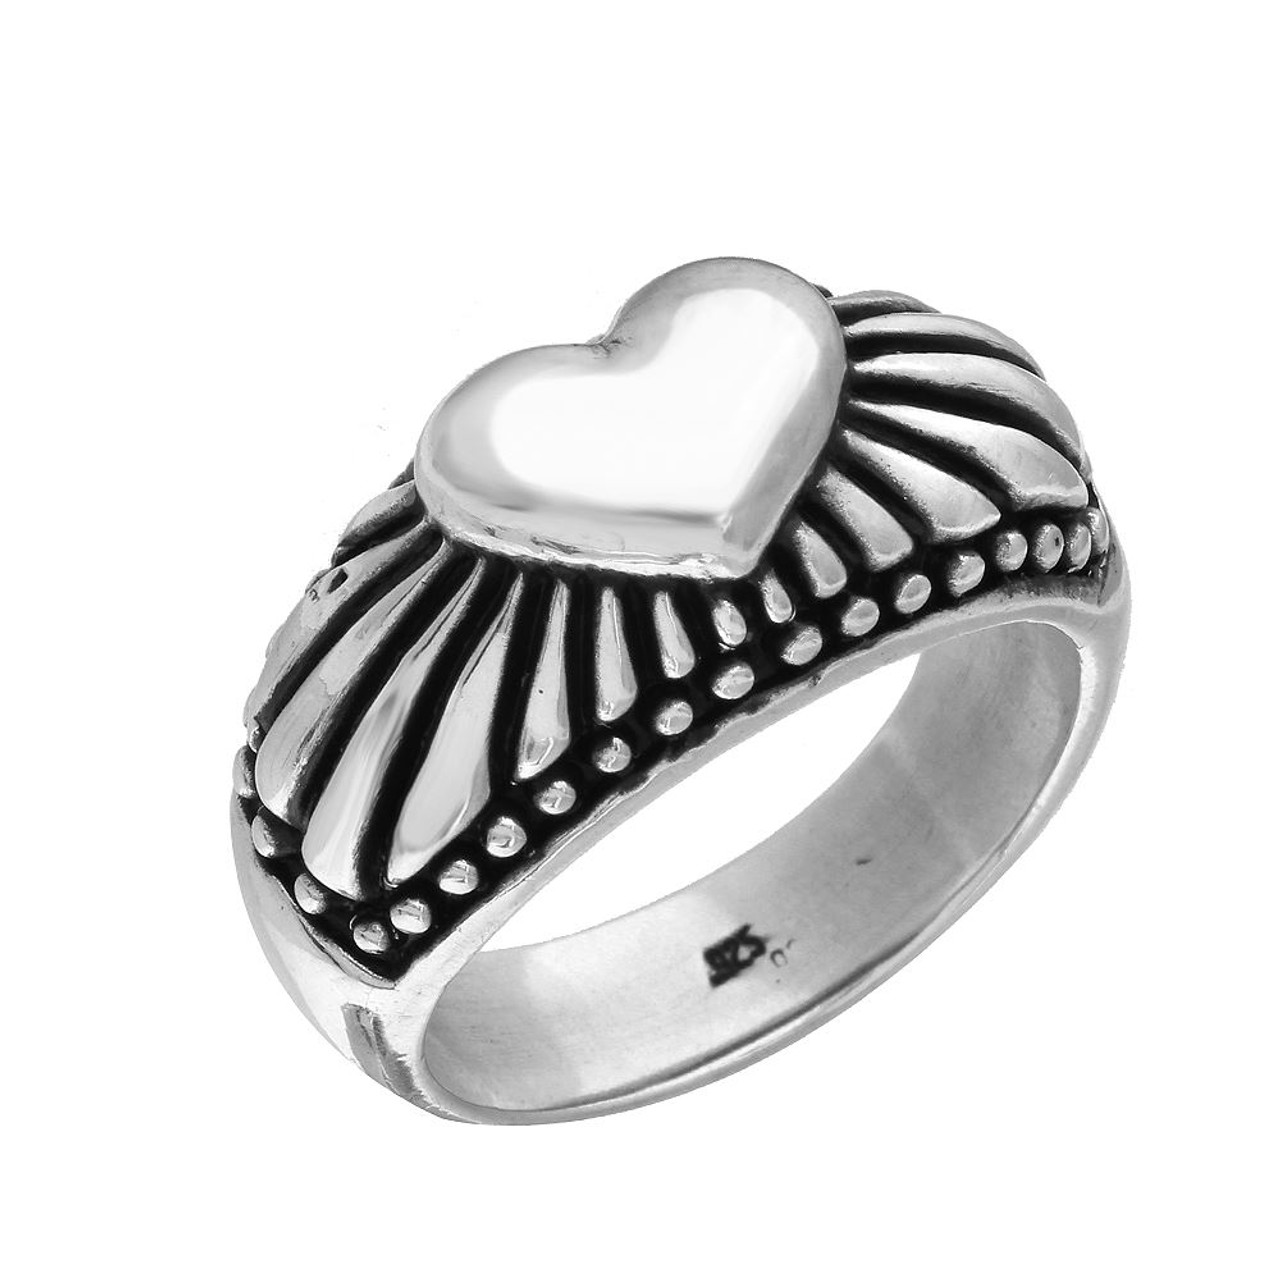 bc224e2b1 TWISTED BLADE SILVER RADIANT HEART RING